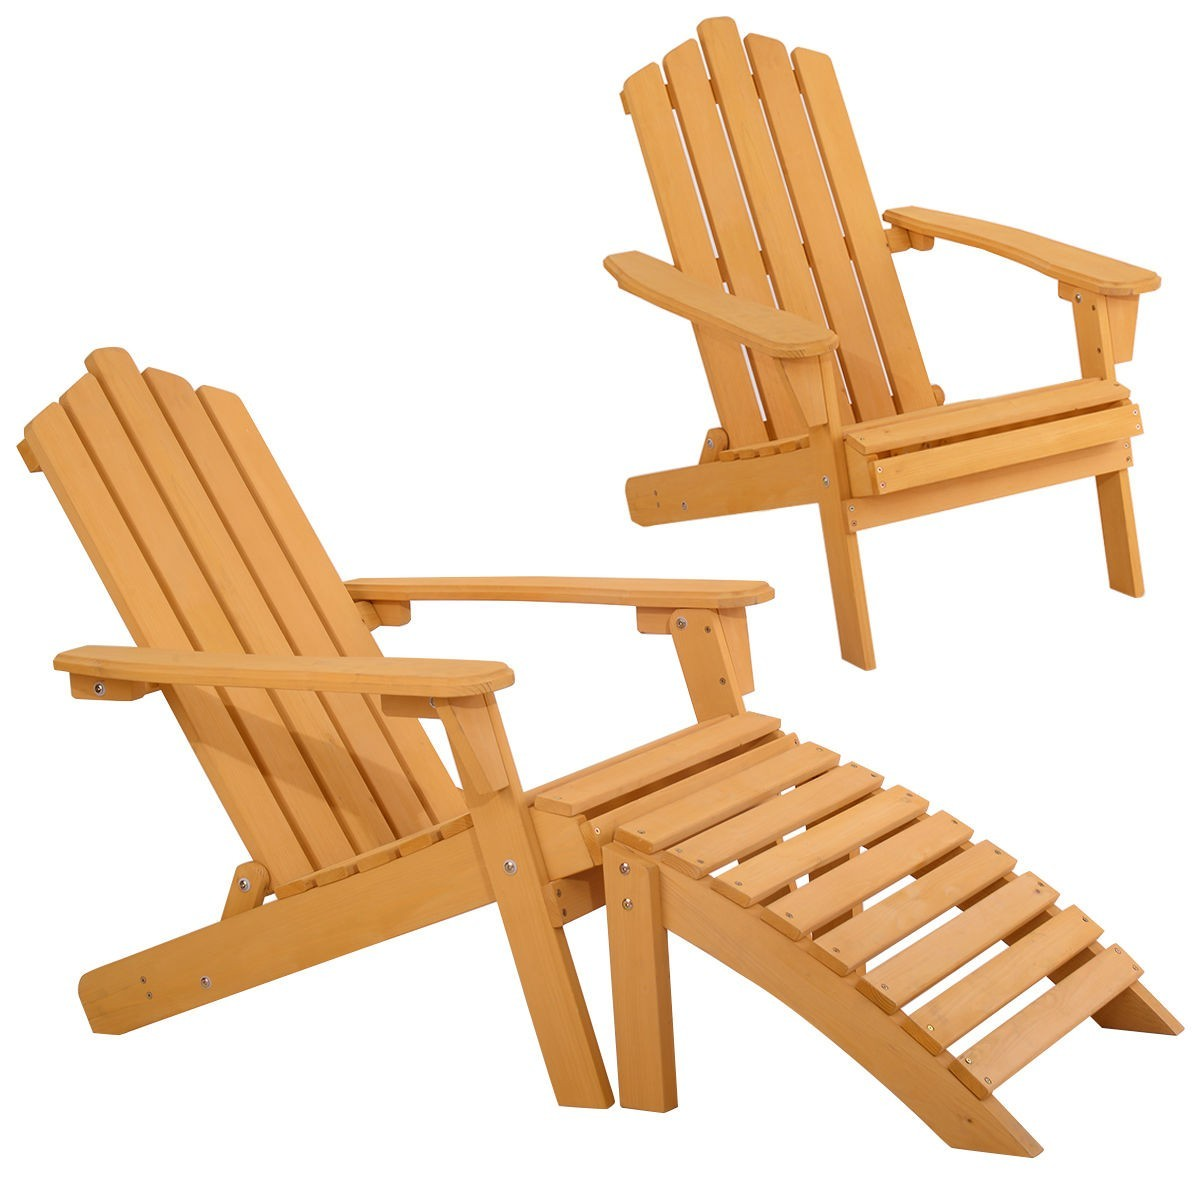 wood adirondack chair w ottoman outdoor patio deck garden lounge furniture. Black Bedroom Furniture Sets. Home Design Ideas